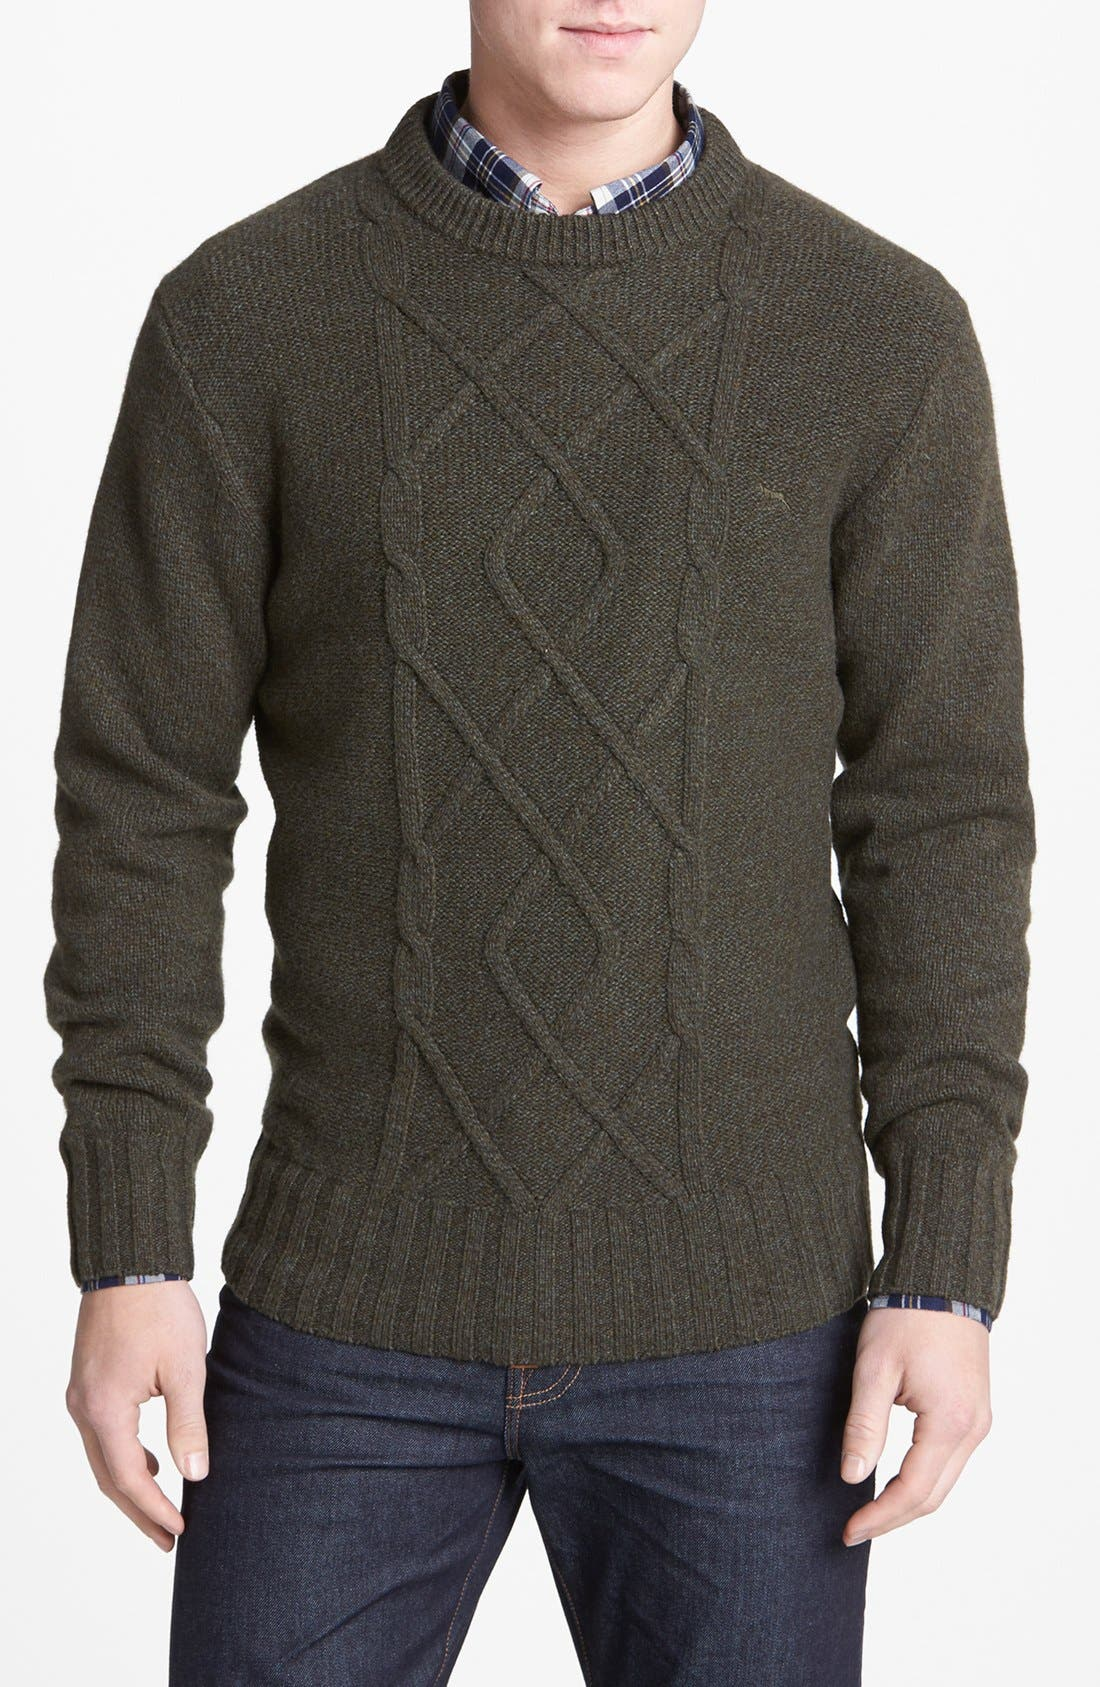 Alternate Image 1 Selected - Rodd & Gunn 'Sumer' Cable Knit Sweater